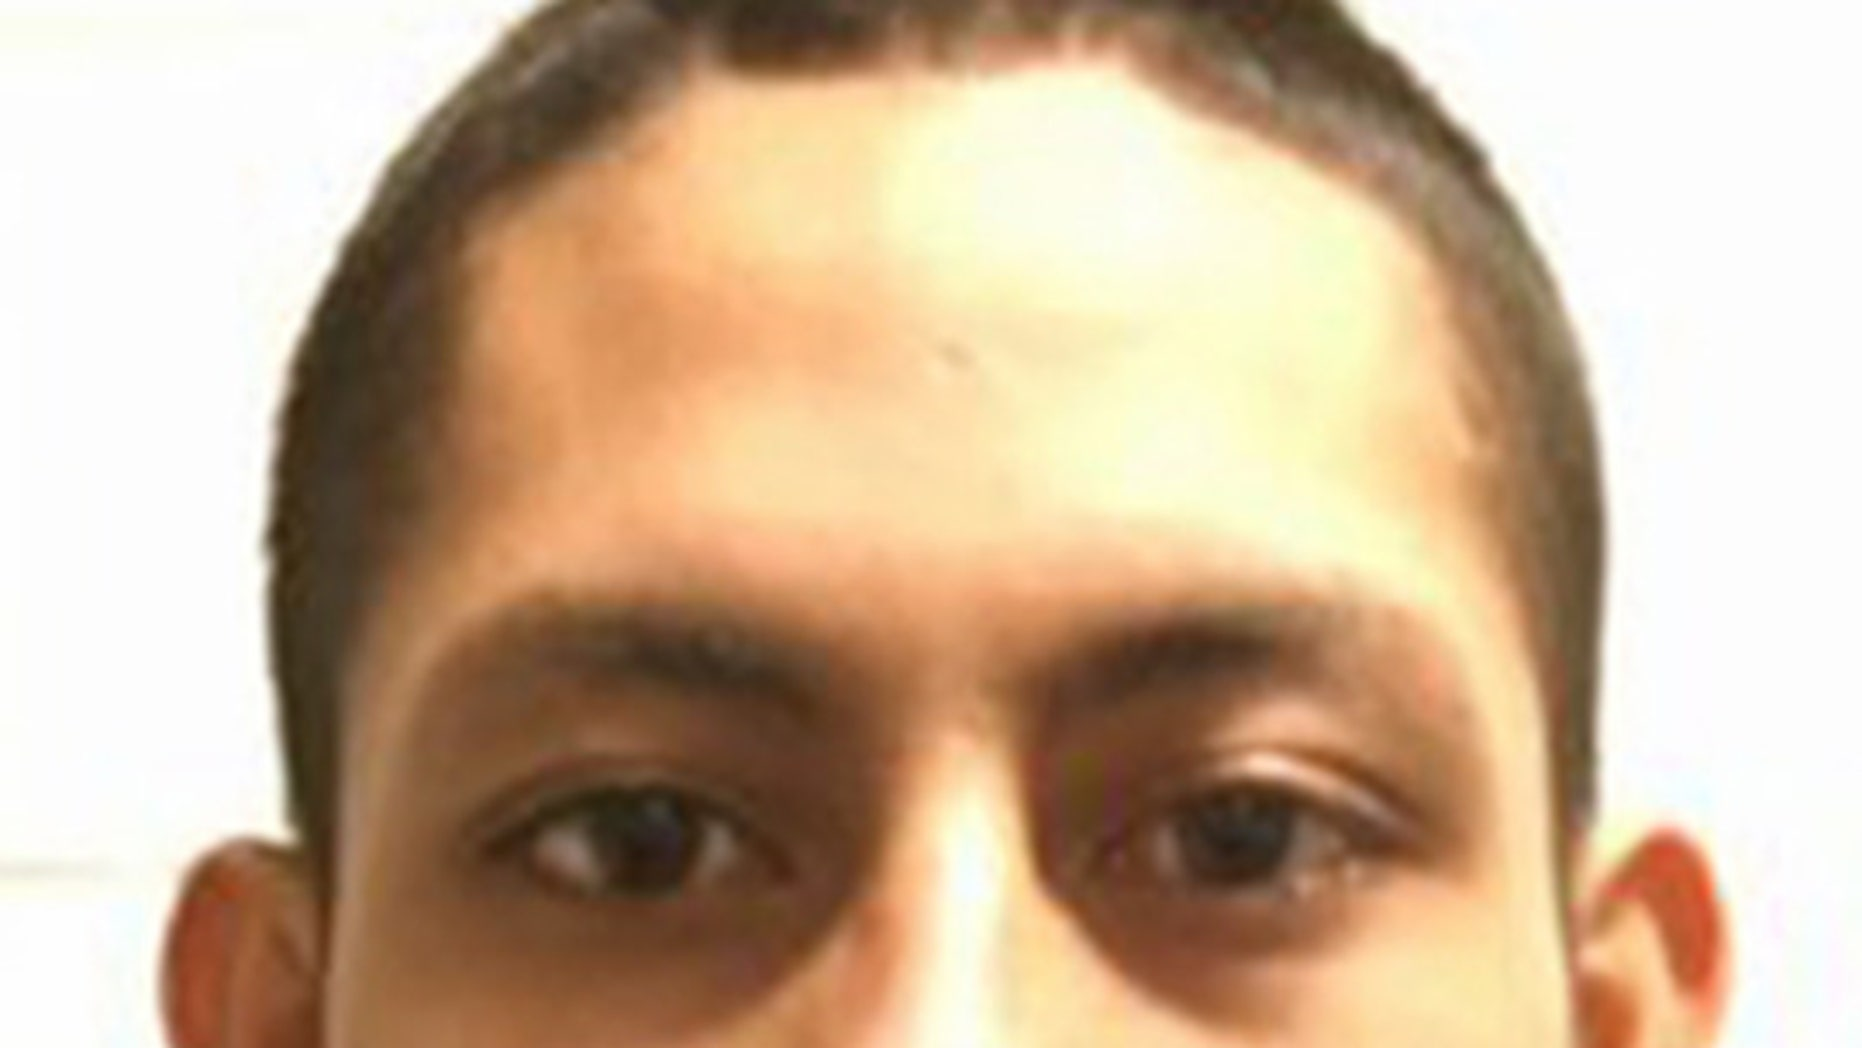 Miguel Lopez-Abrego was arrested last month in connection with the killing.